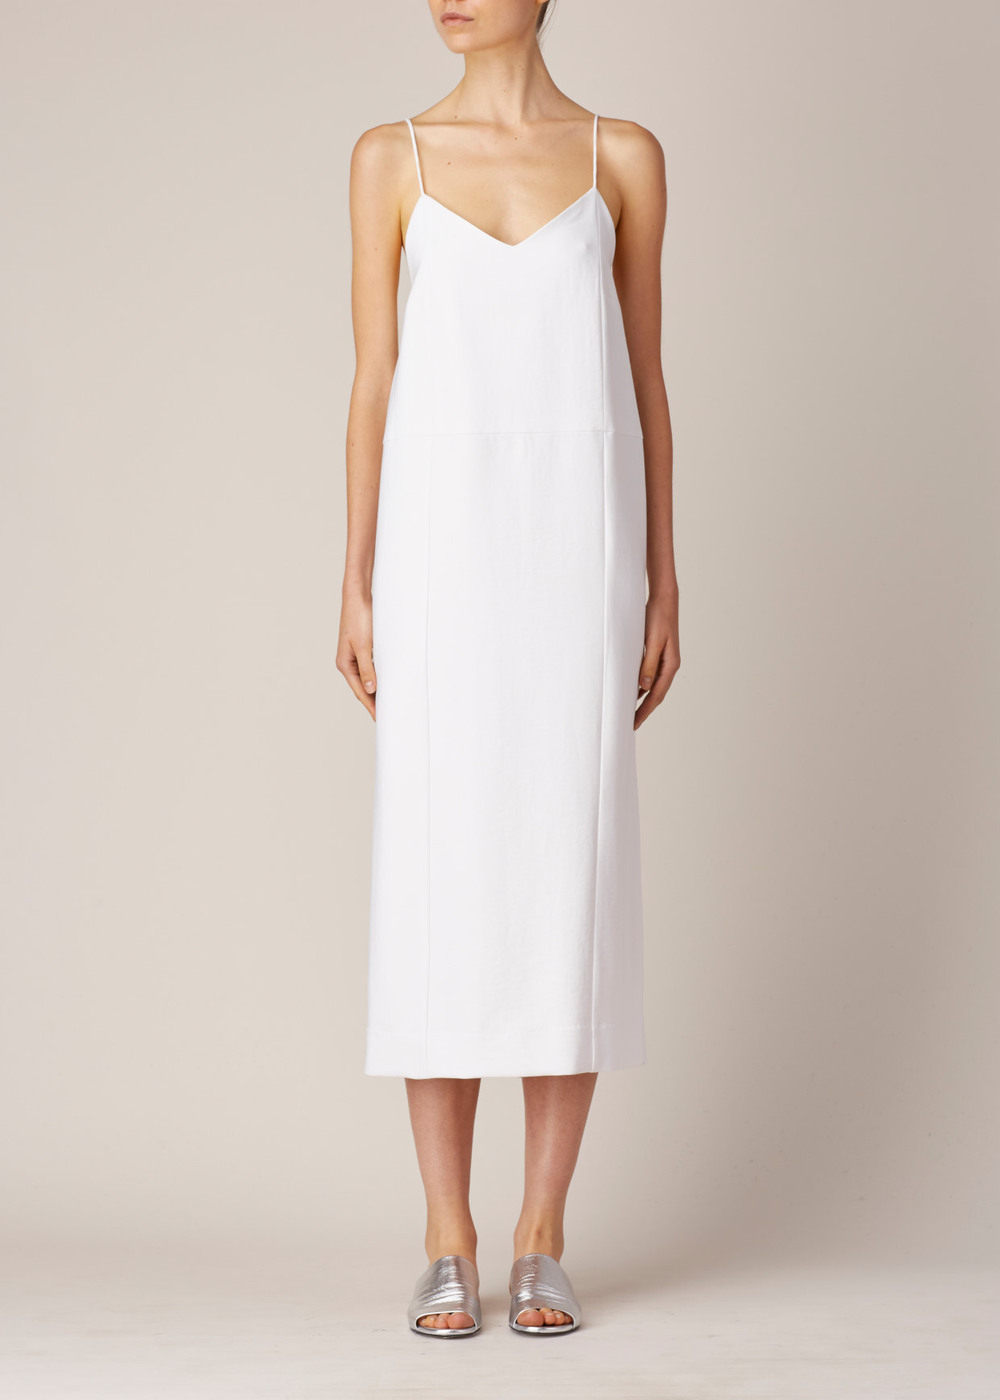 Suzanne Ray White Camisole Dress